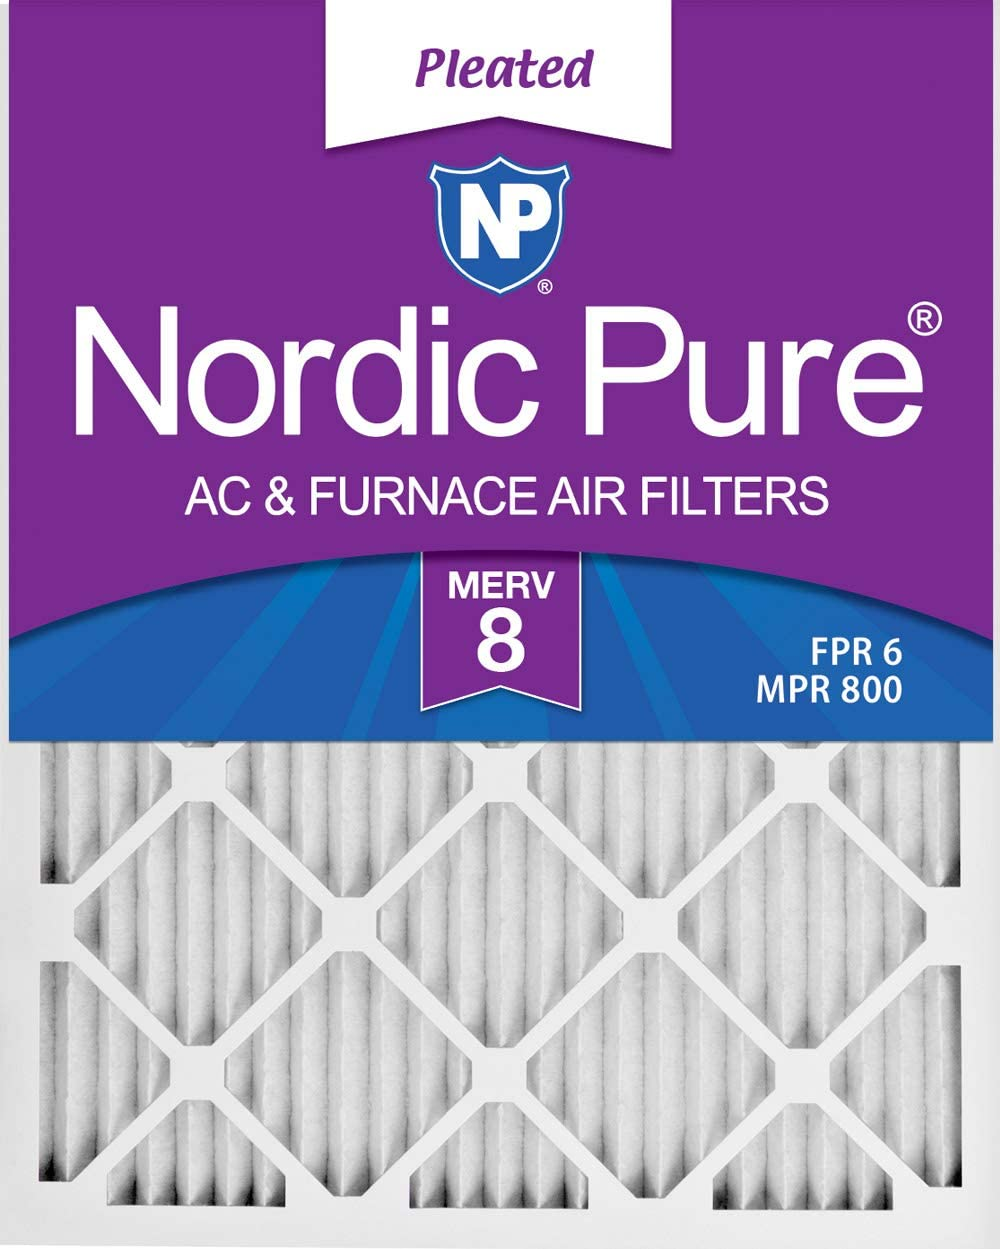 Nordic Pure 20x25x1 Merv 8 Pleated Ac Furnace Air Filters 6 Pack Replacement Furnace Filters Amazon Com